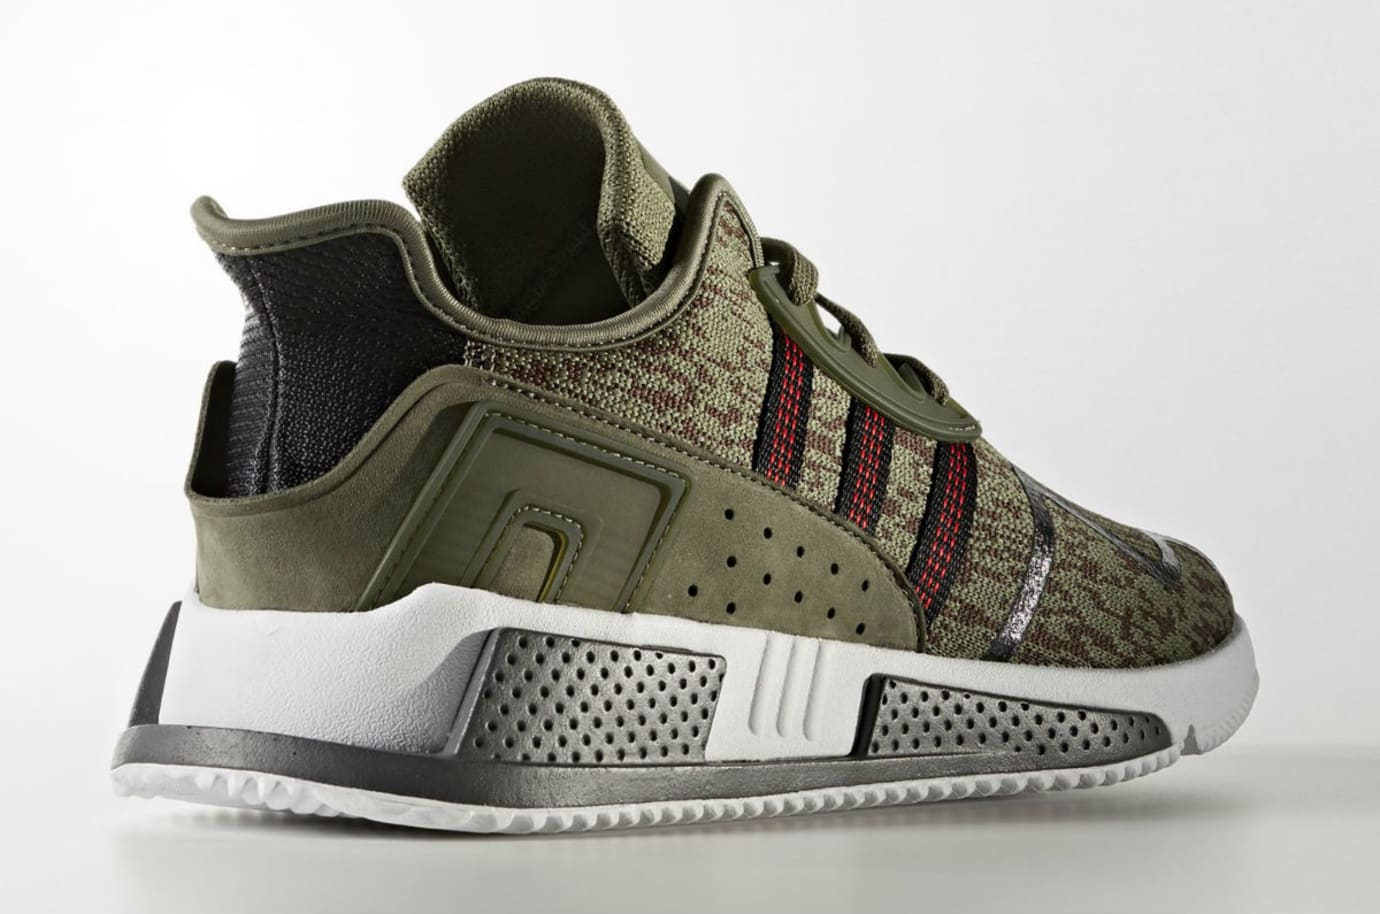 Adidas EQT Cushion ADV Olive Camo Release Date AC7722 Lateral